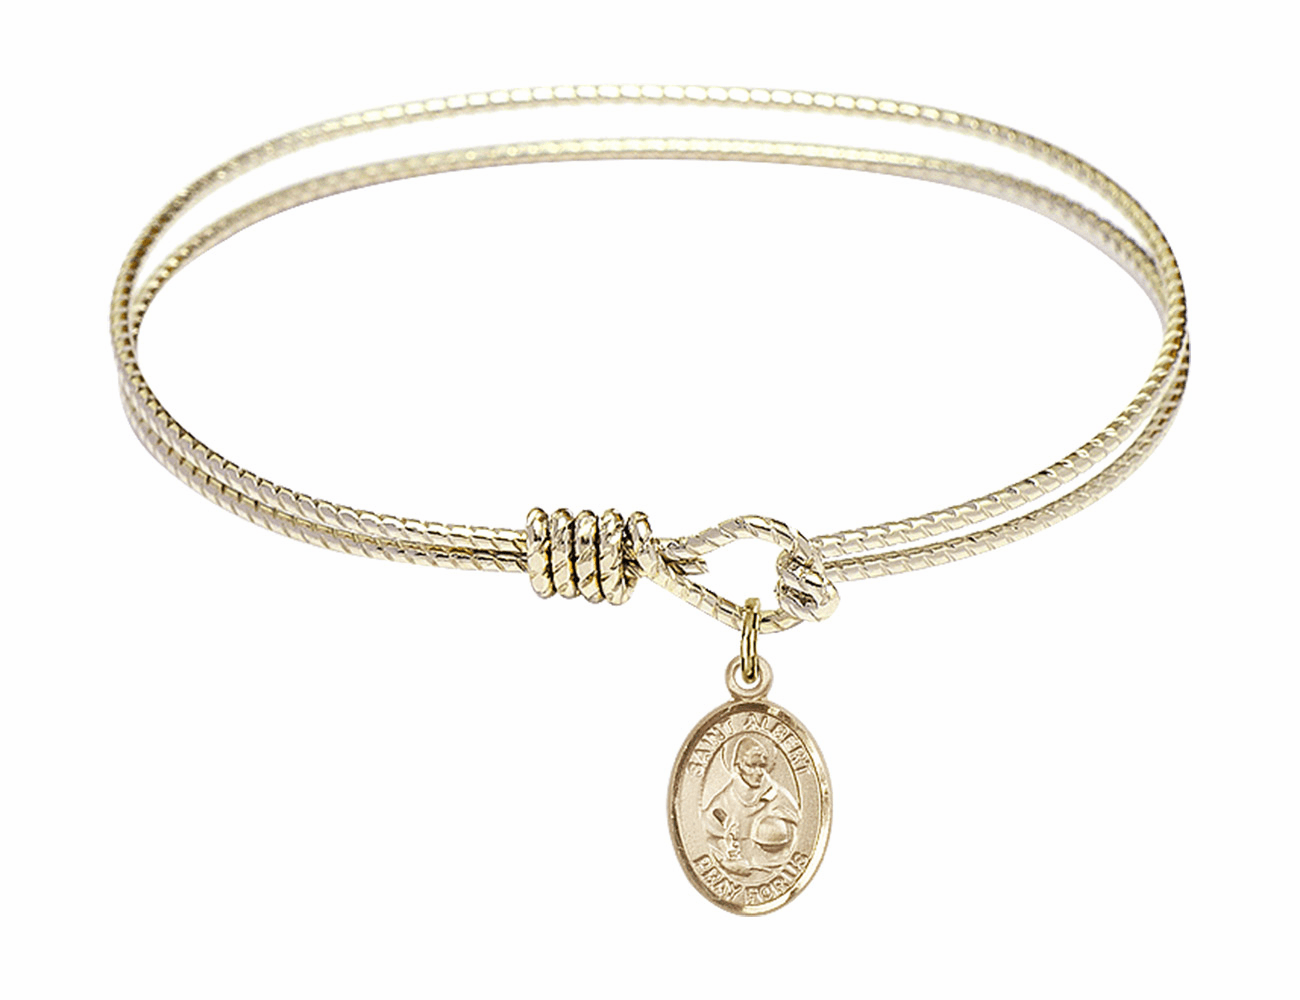 Twisted St Albert the Great Bangle 14kt Gold-filled Charm Bracelet by Bliss